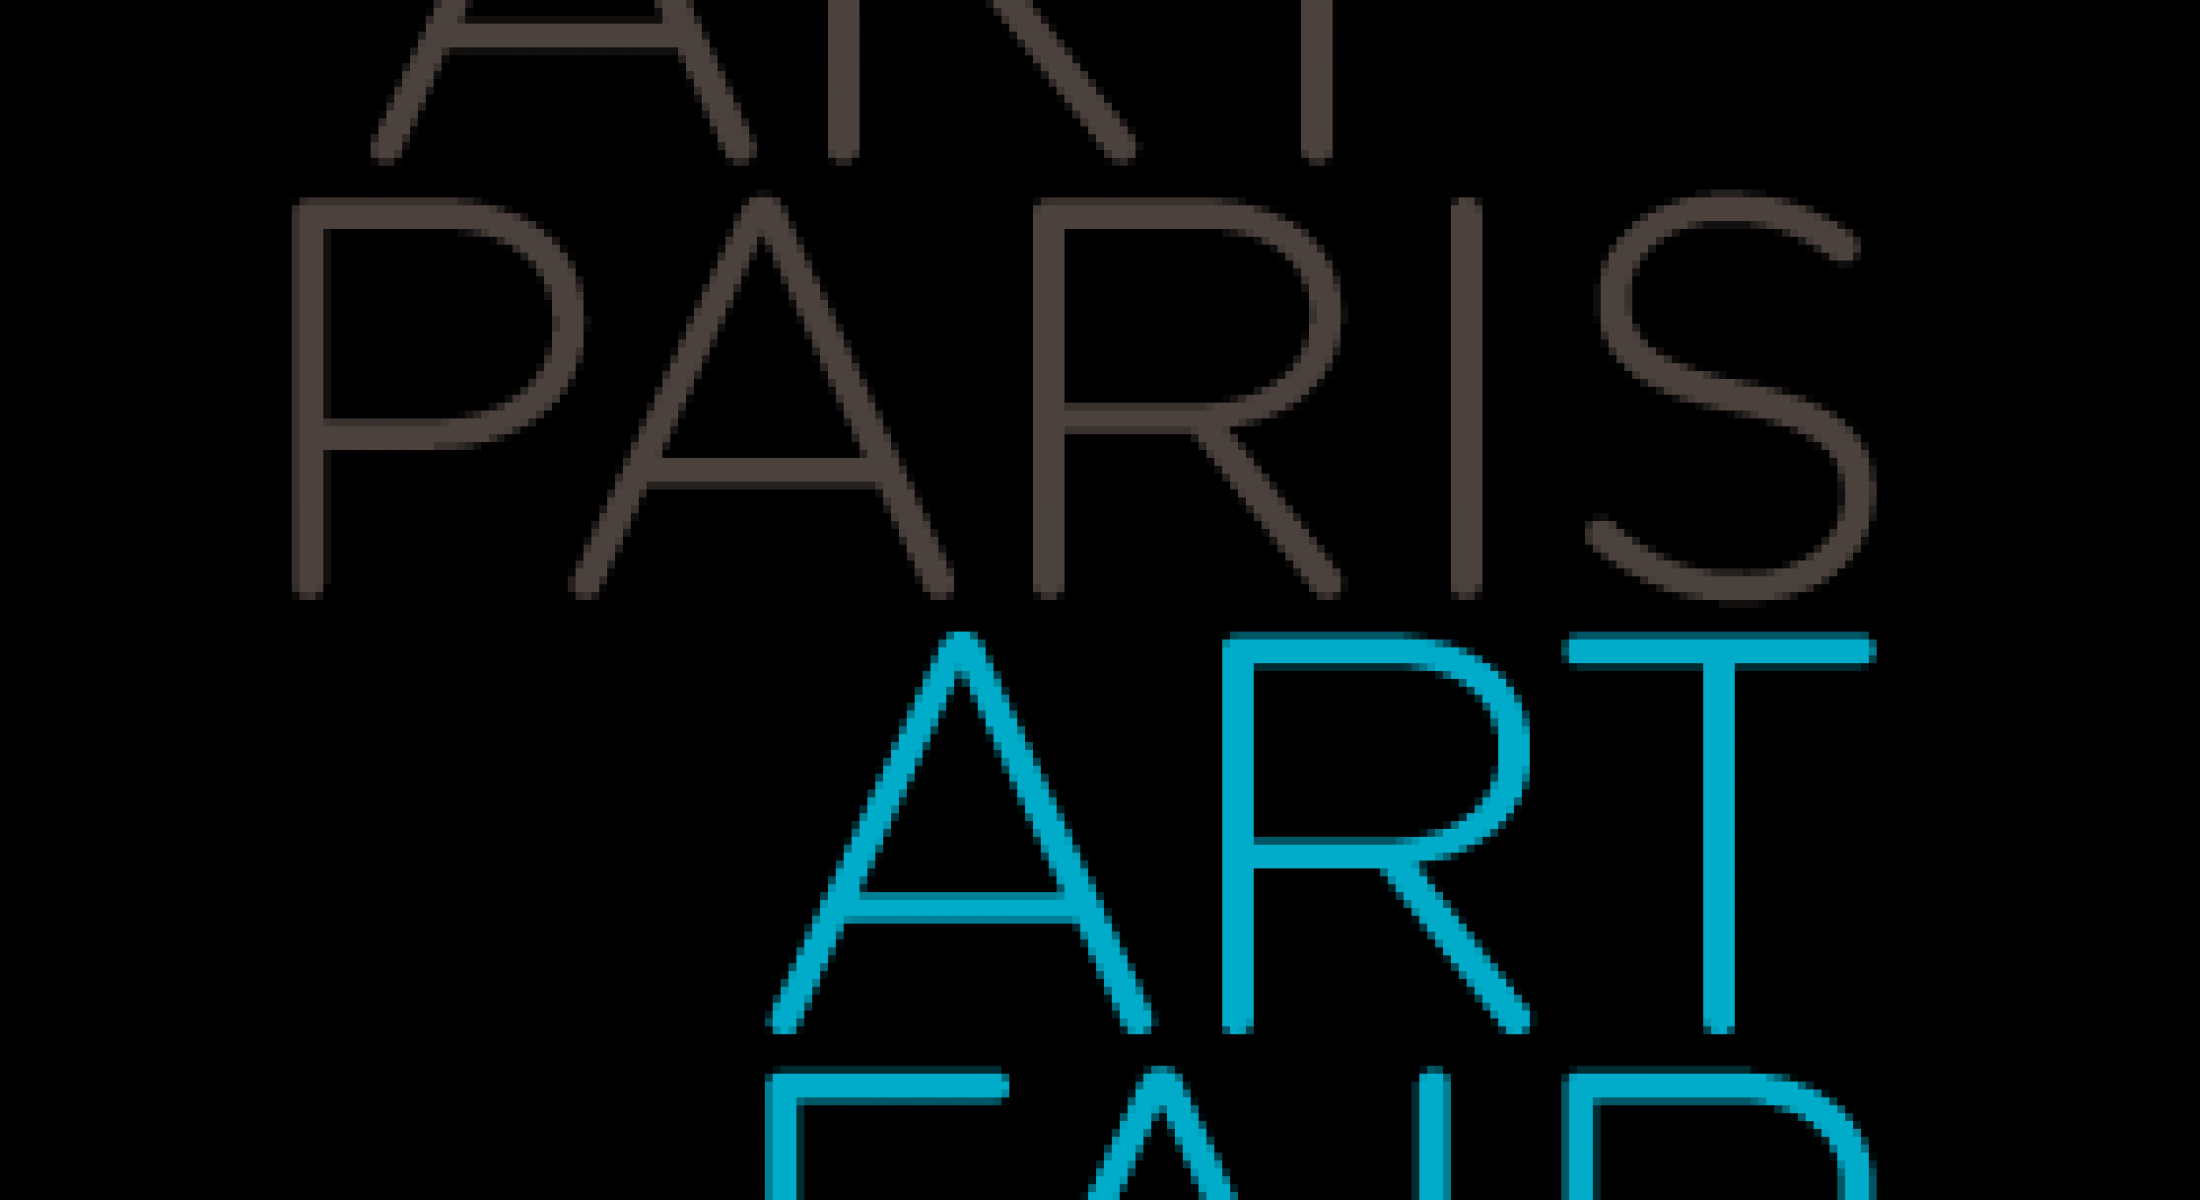 Press release announcement - Art Paris Art Fair 2018